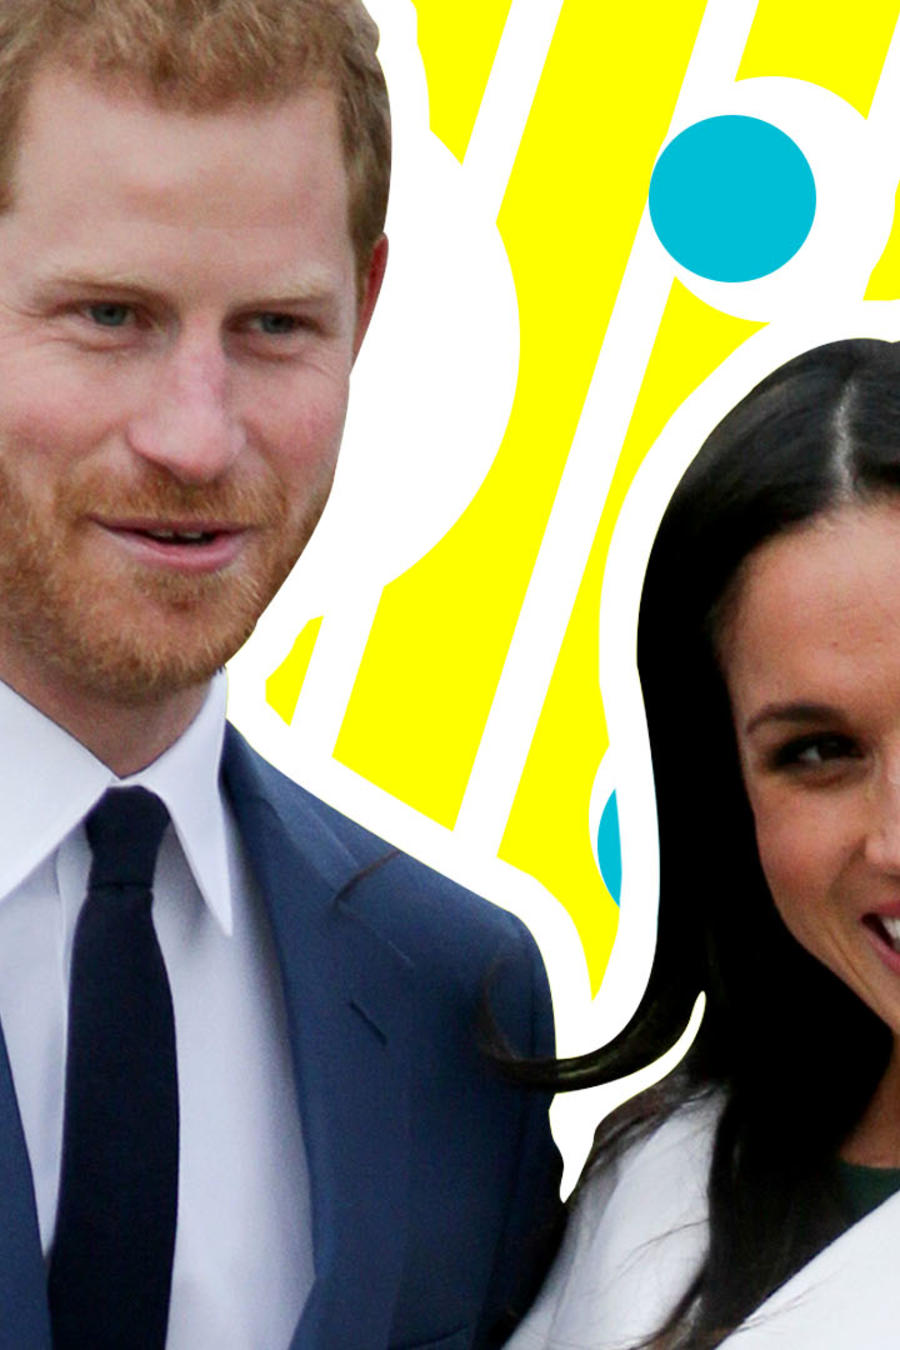 Príncipe Harry y Meghan Markle regresan a Londrés